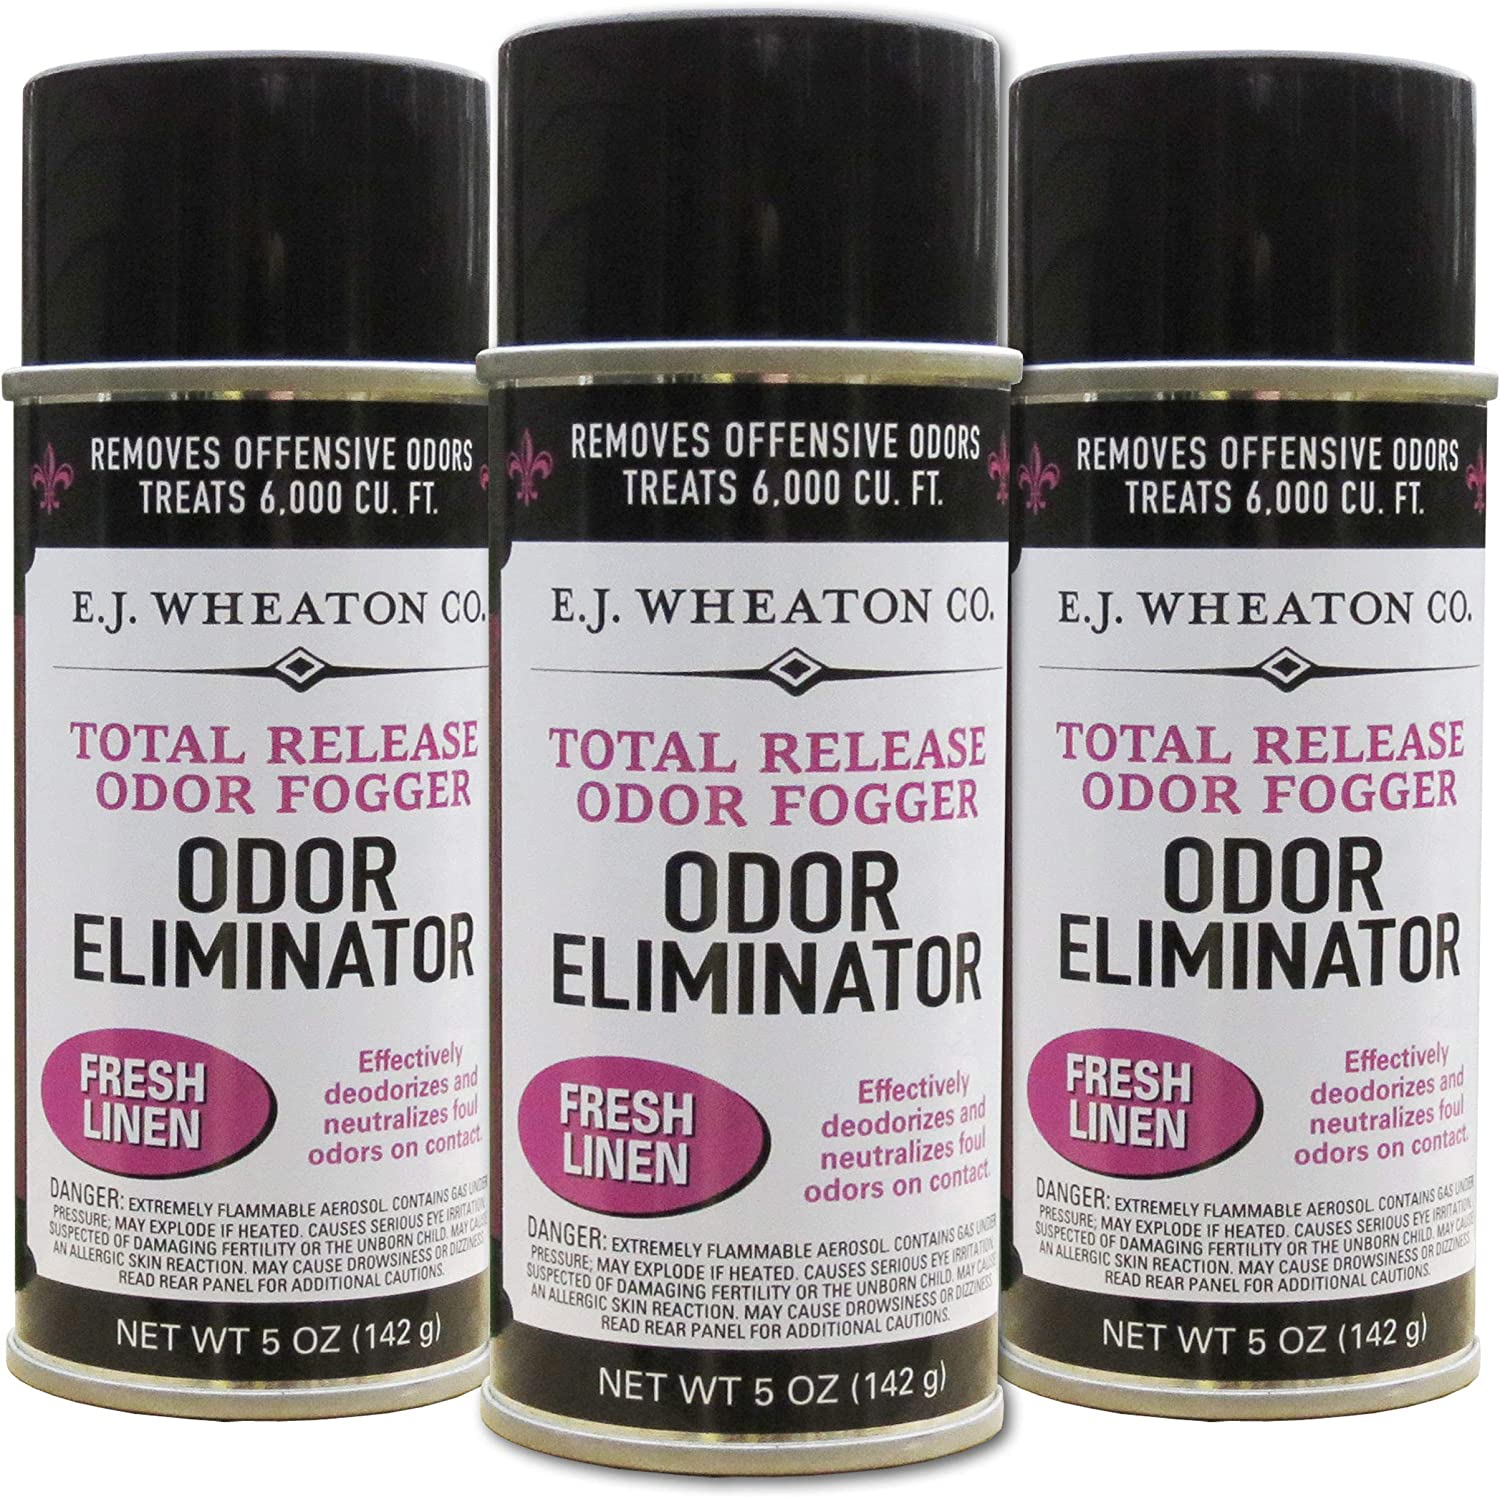 E.J. Wheaton Co. Odor Eliminator, Total Release Odor Fogger, 3 Pack, Effectively Deodorizes and Neutralizes Foul Odors on Contact, Fresh Linen (5 OZ)